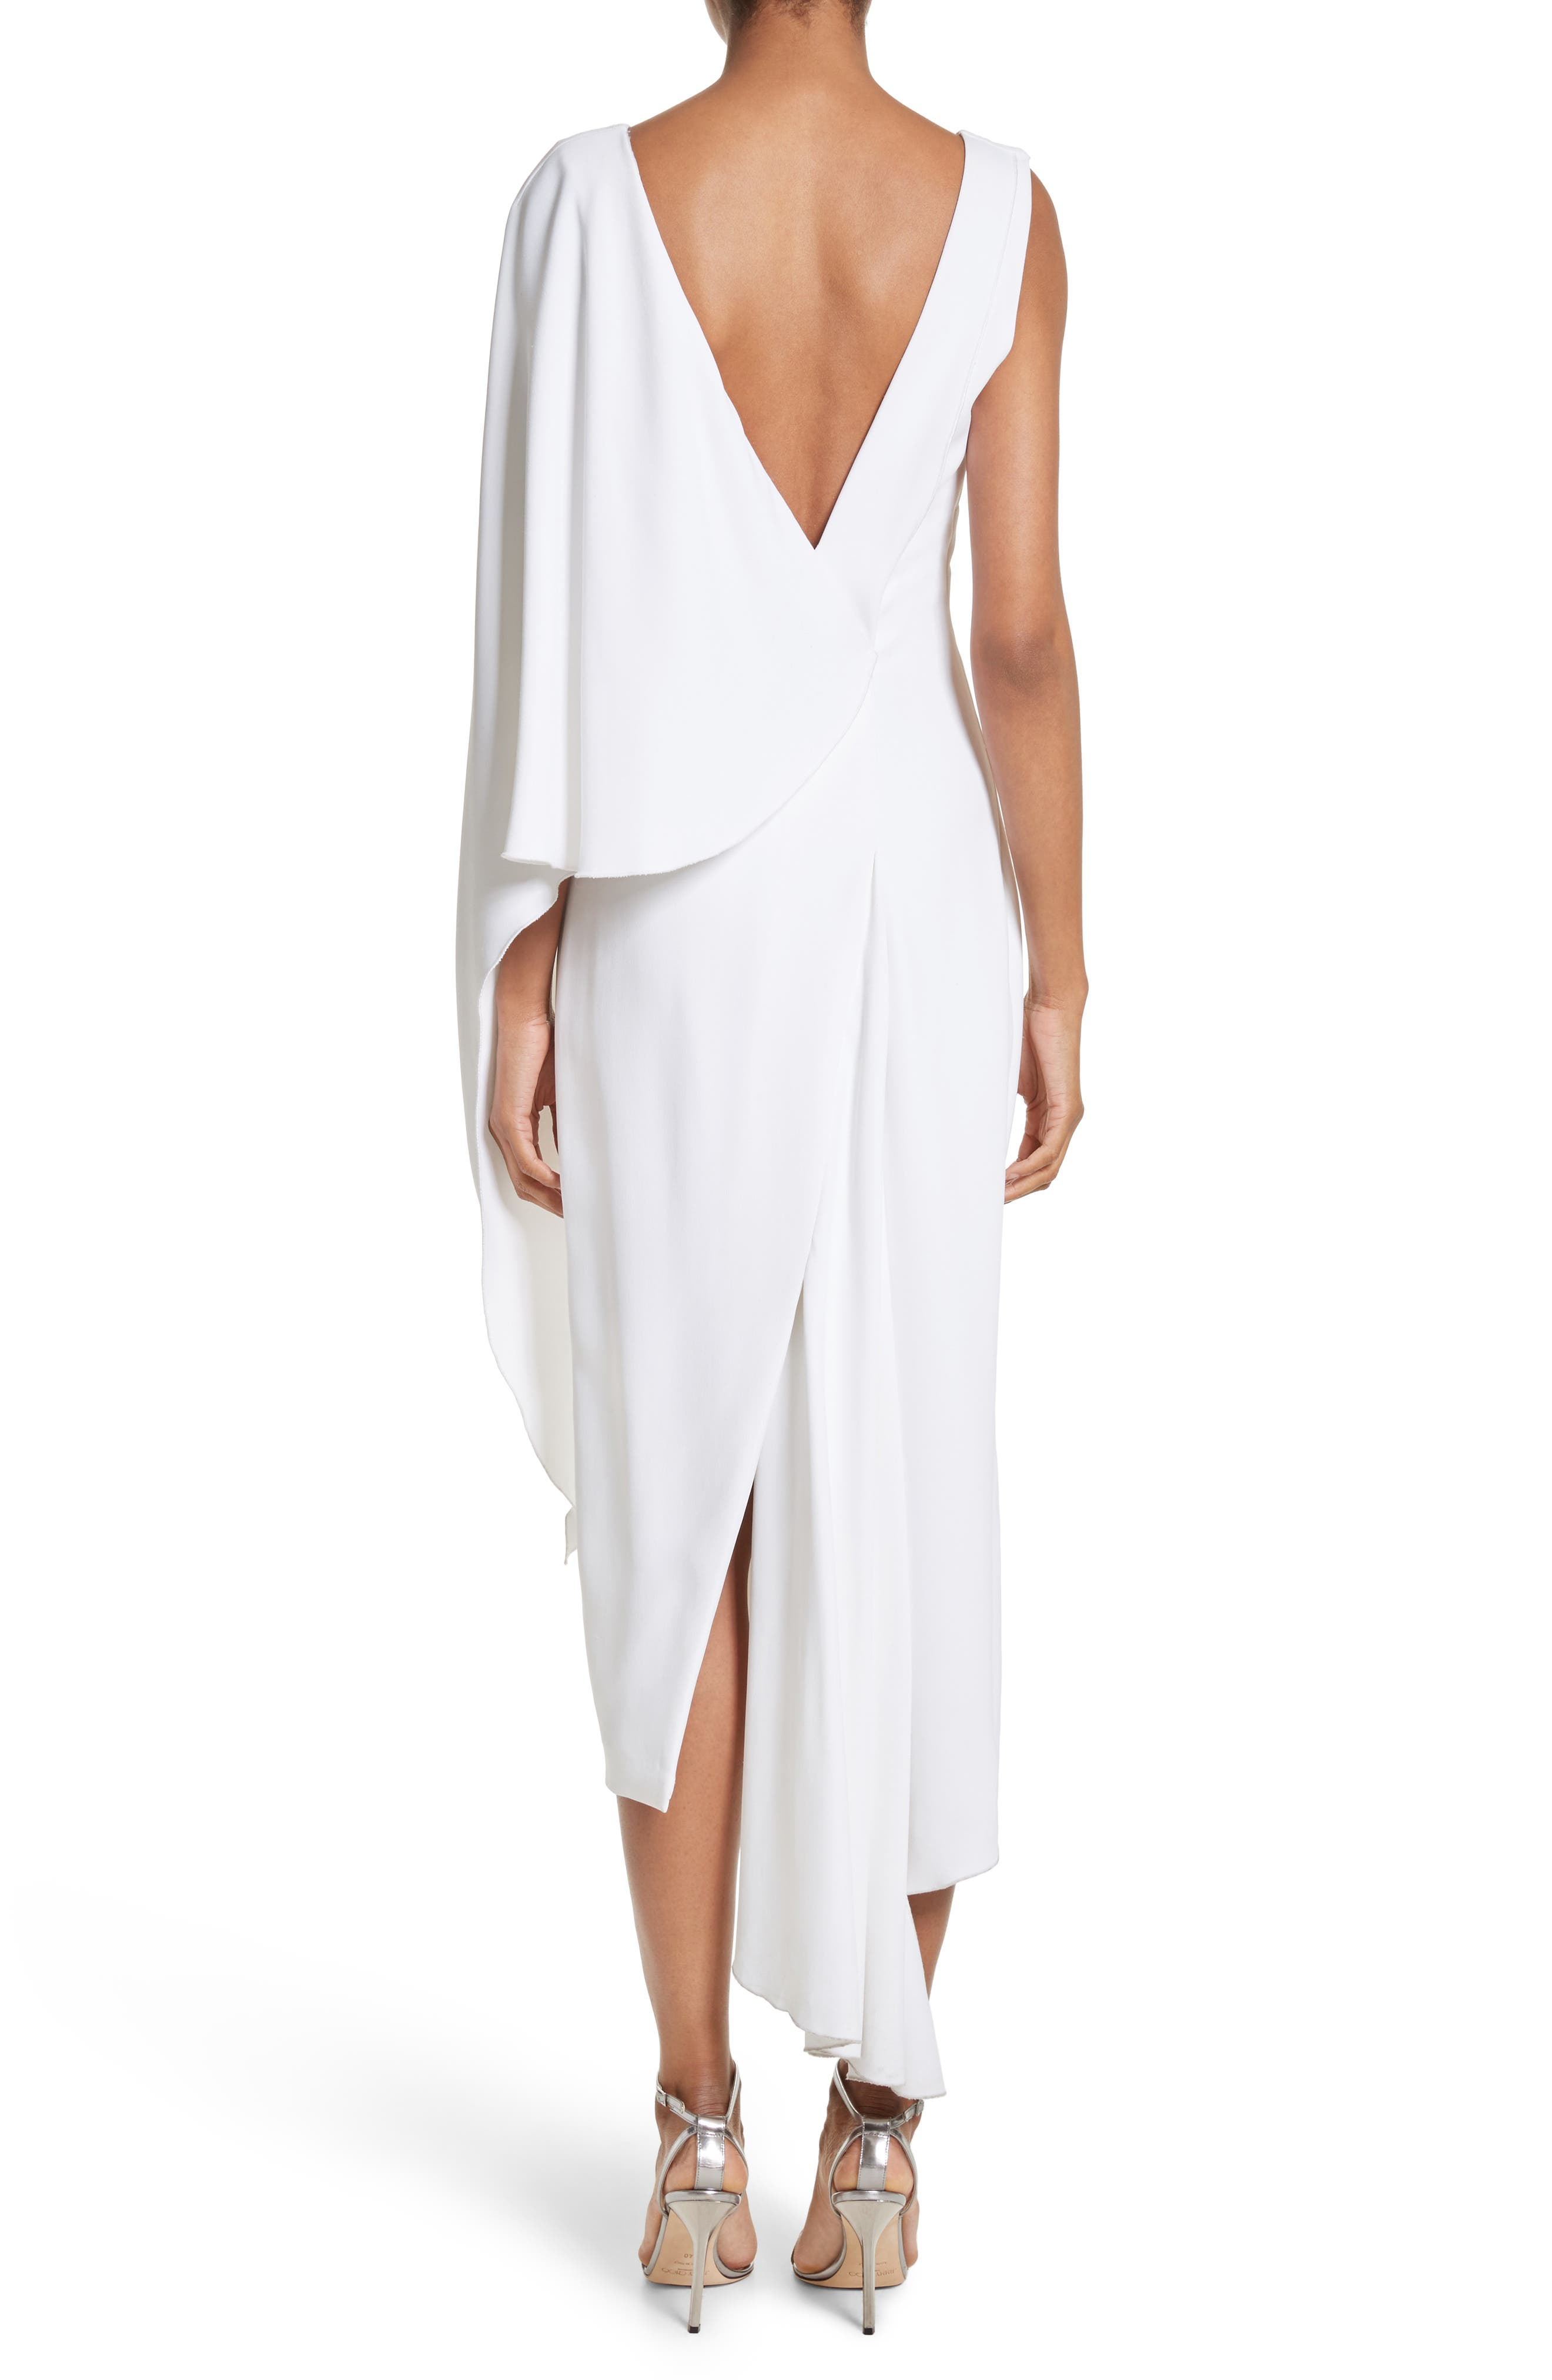 Leta Drape Dress,                             Alternate thumbnail 2, color,                             WHITE